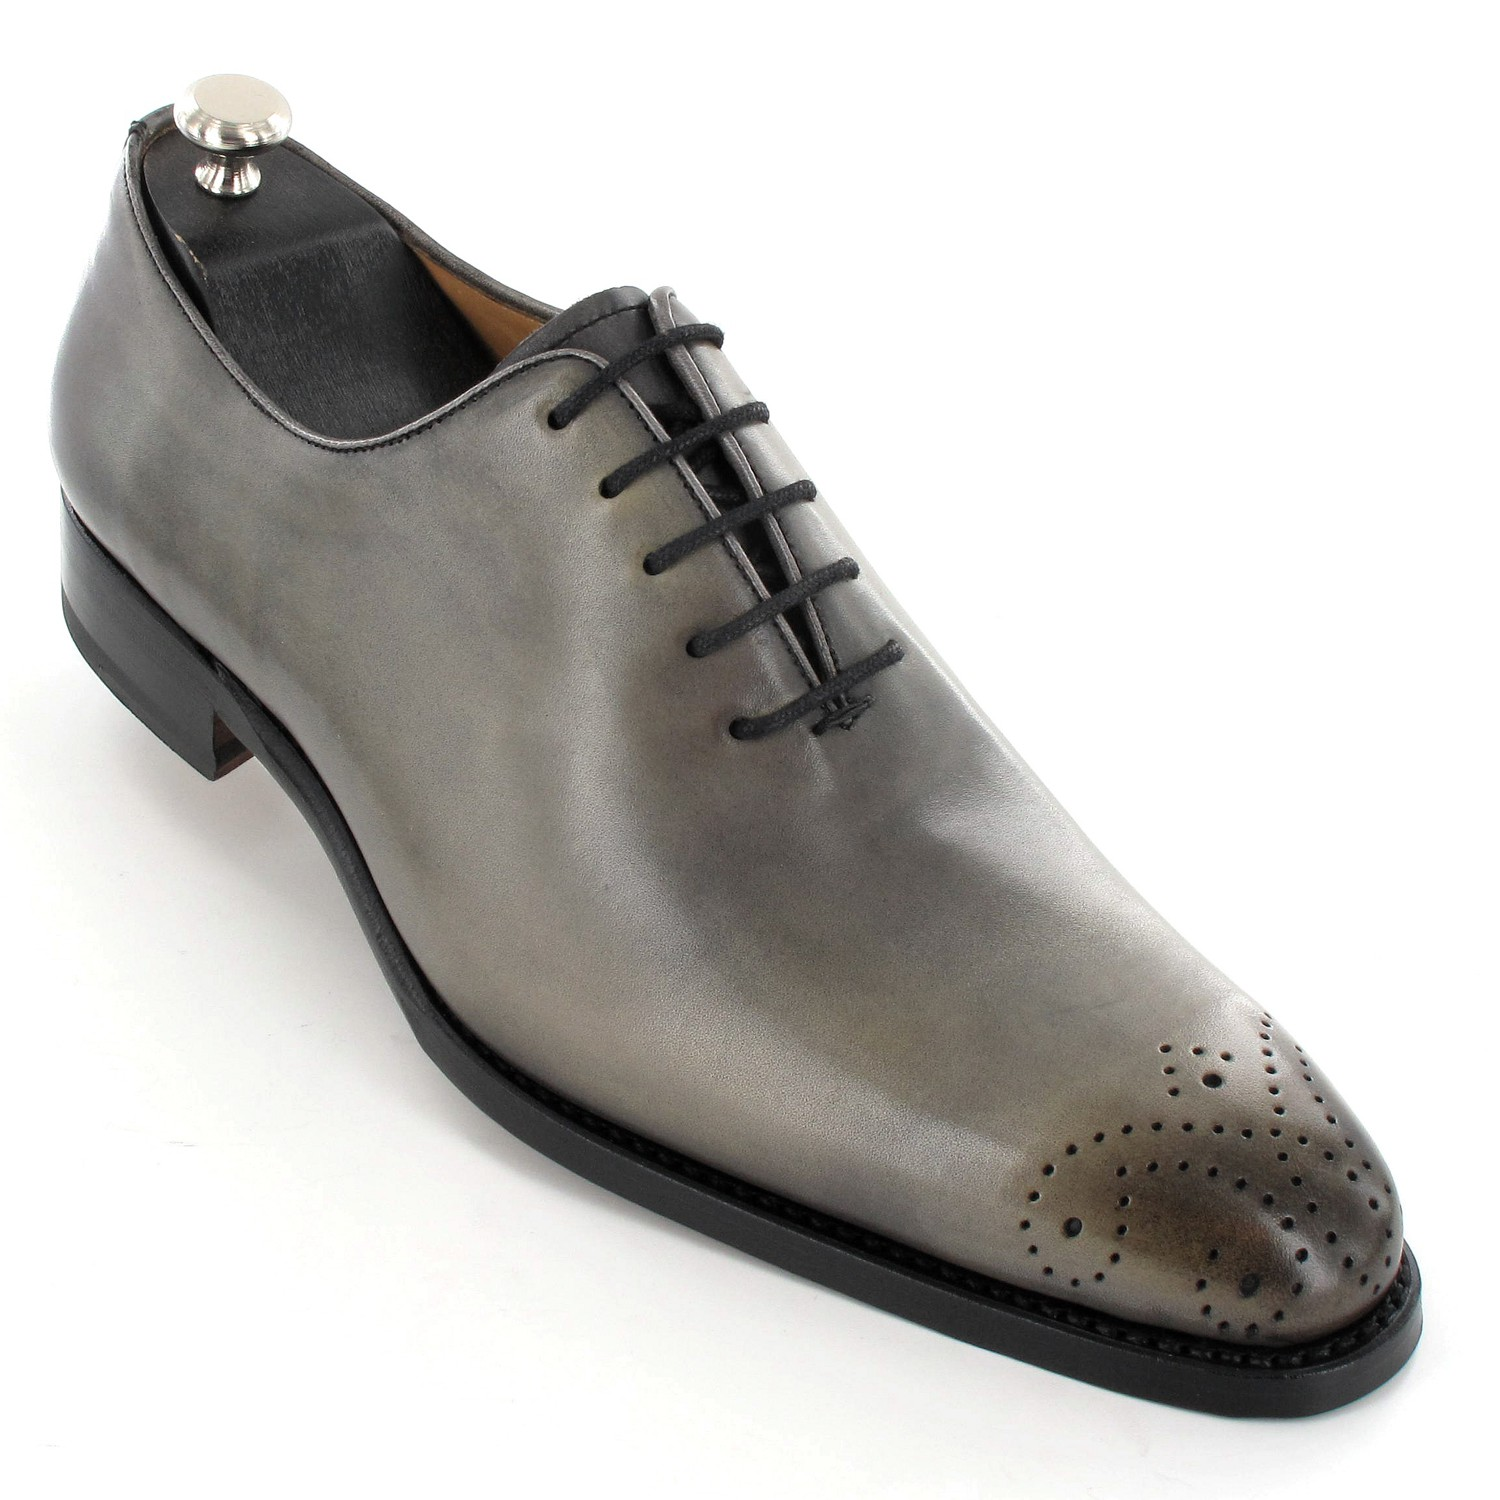 Chaussured Chaussures Grises De Luxe Pour Homme